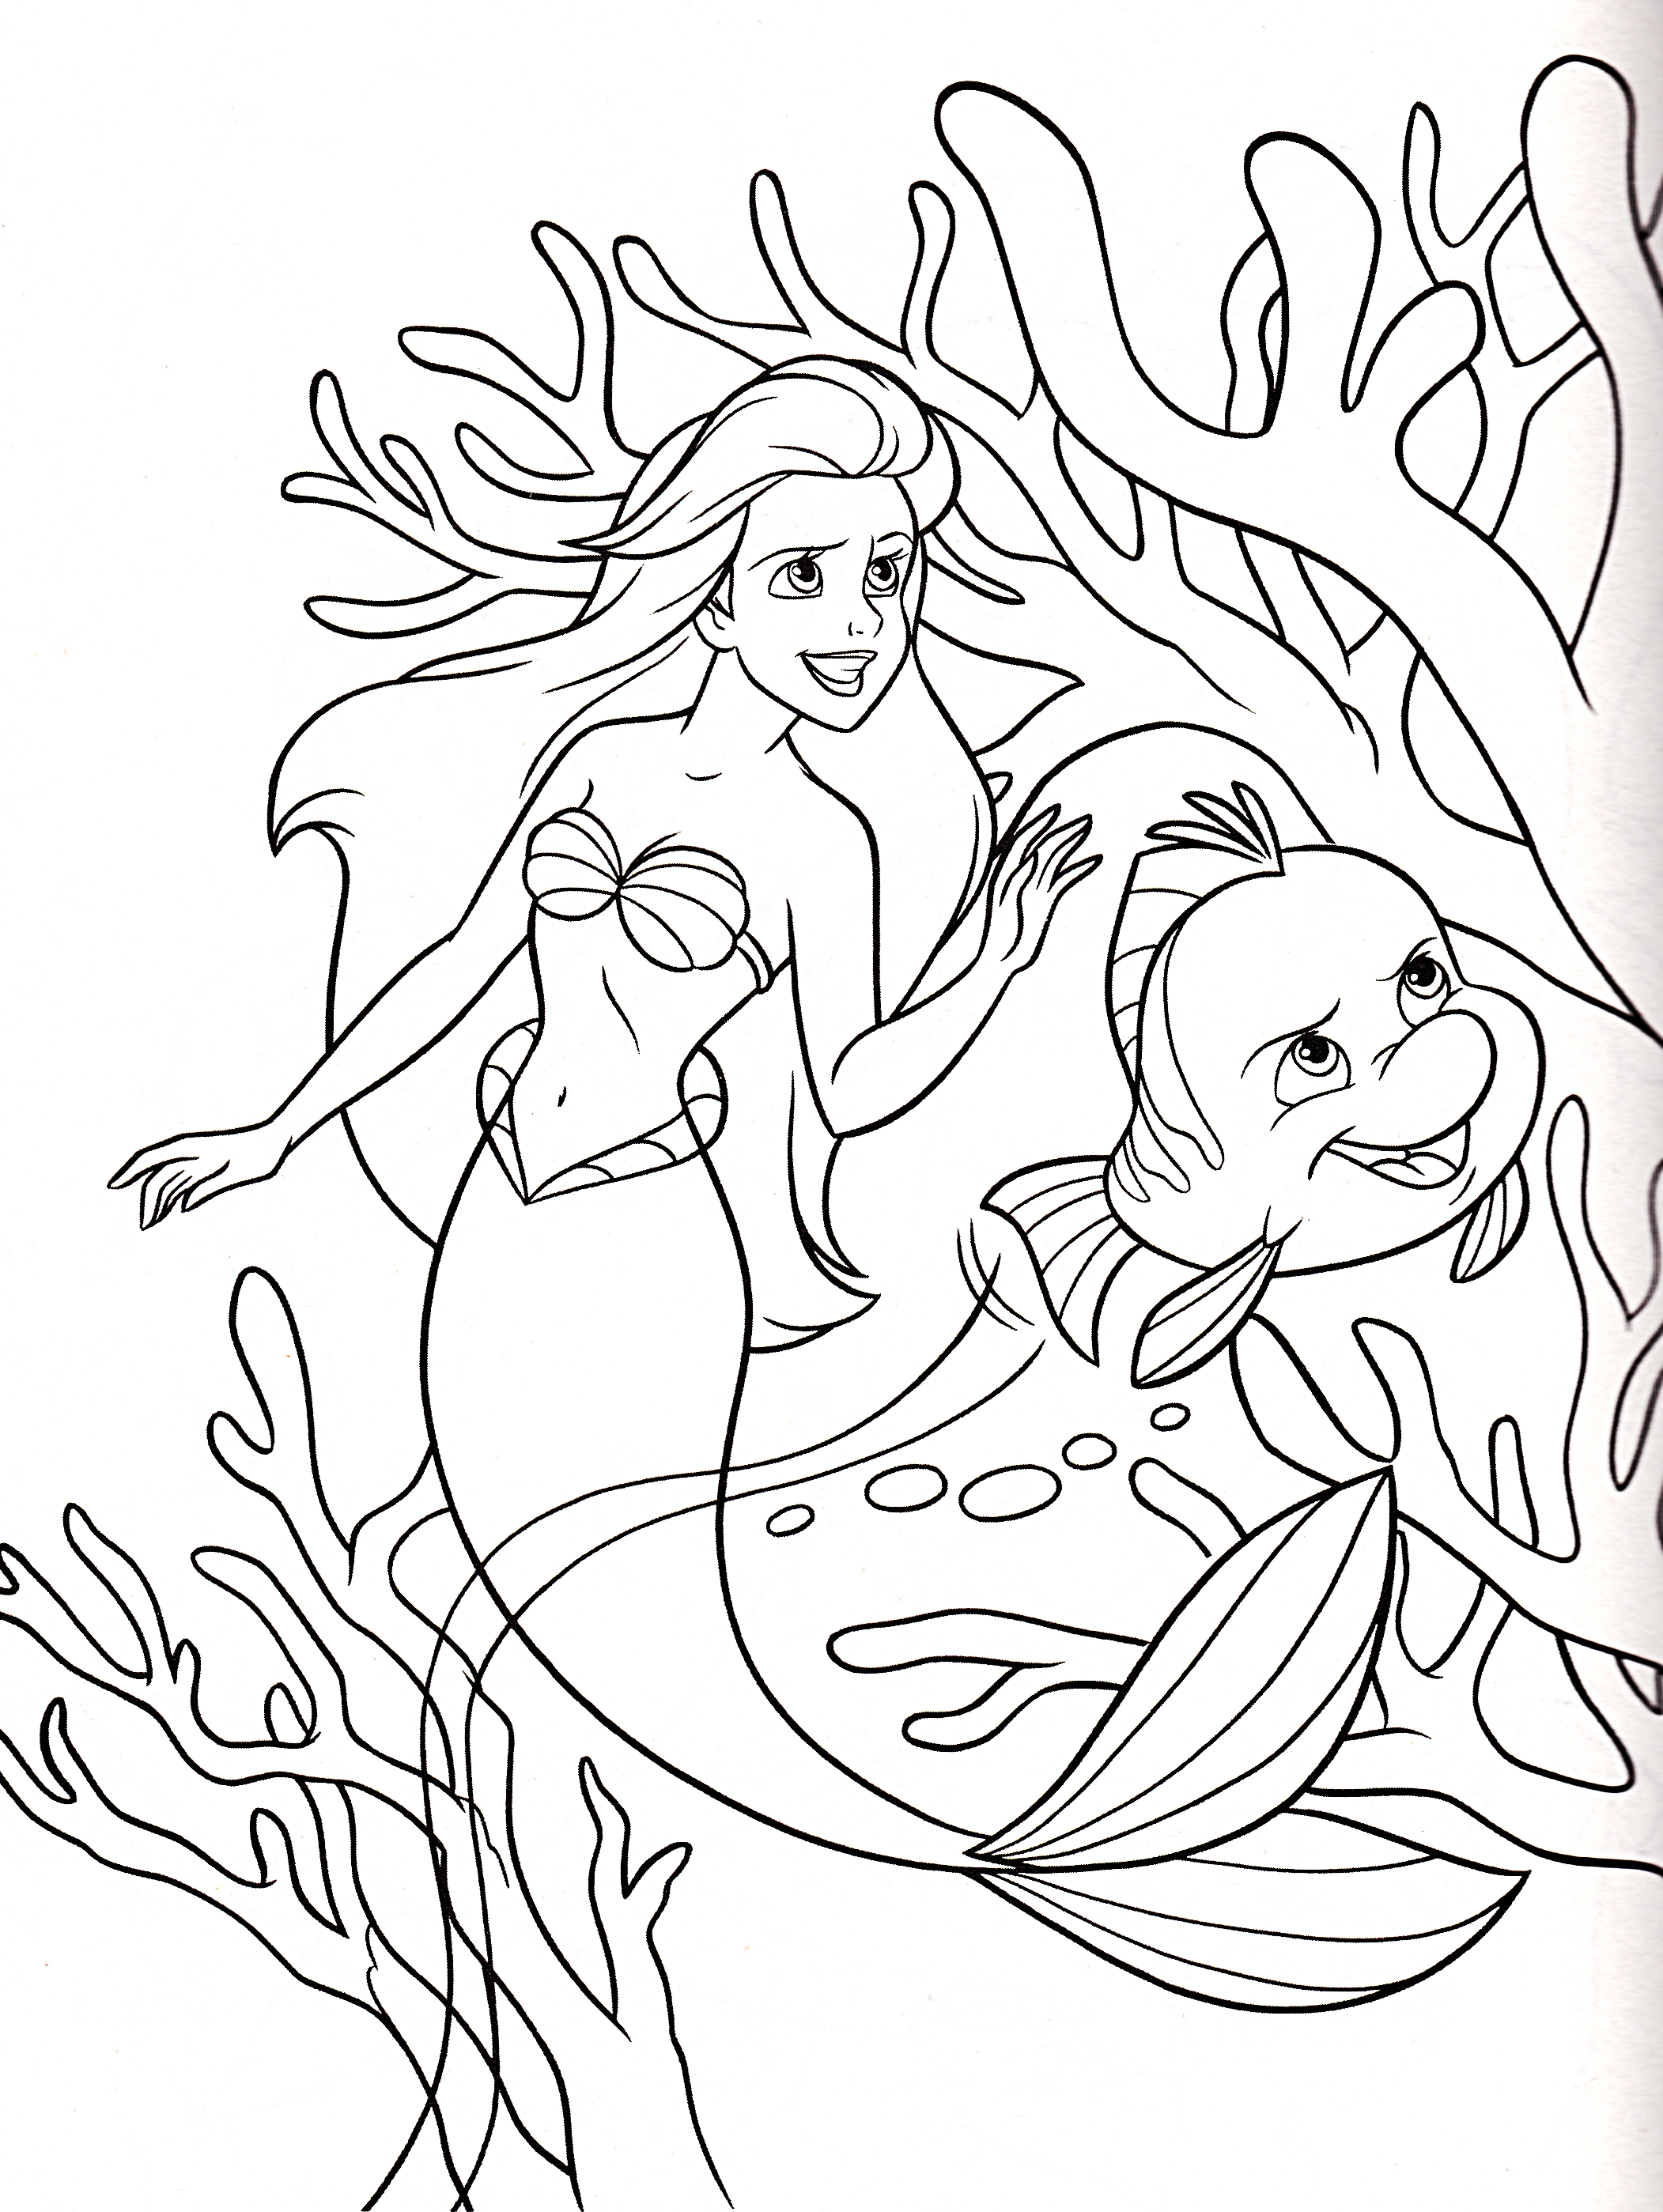 Stress relief coloring books disney - Disney Princess Relaxation Coloring Book 48